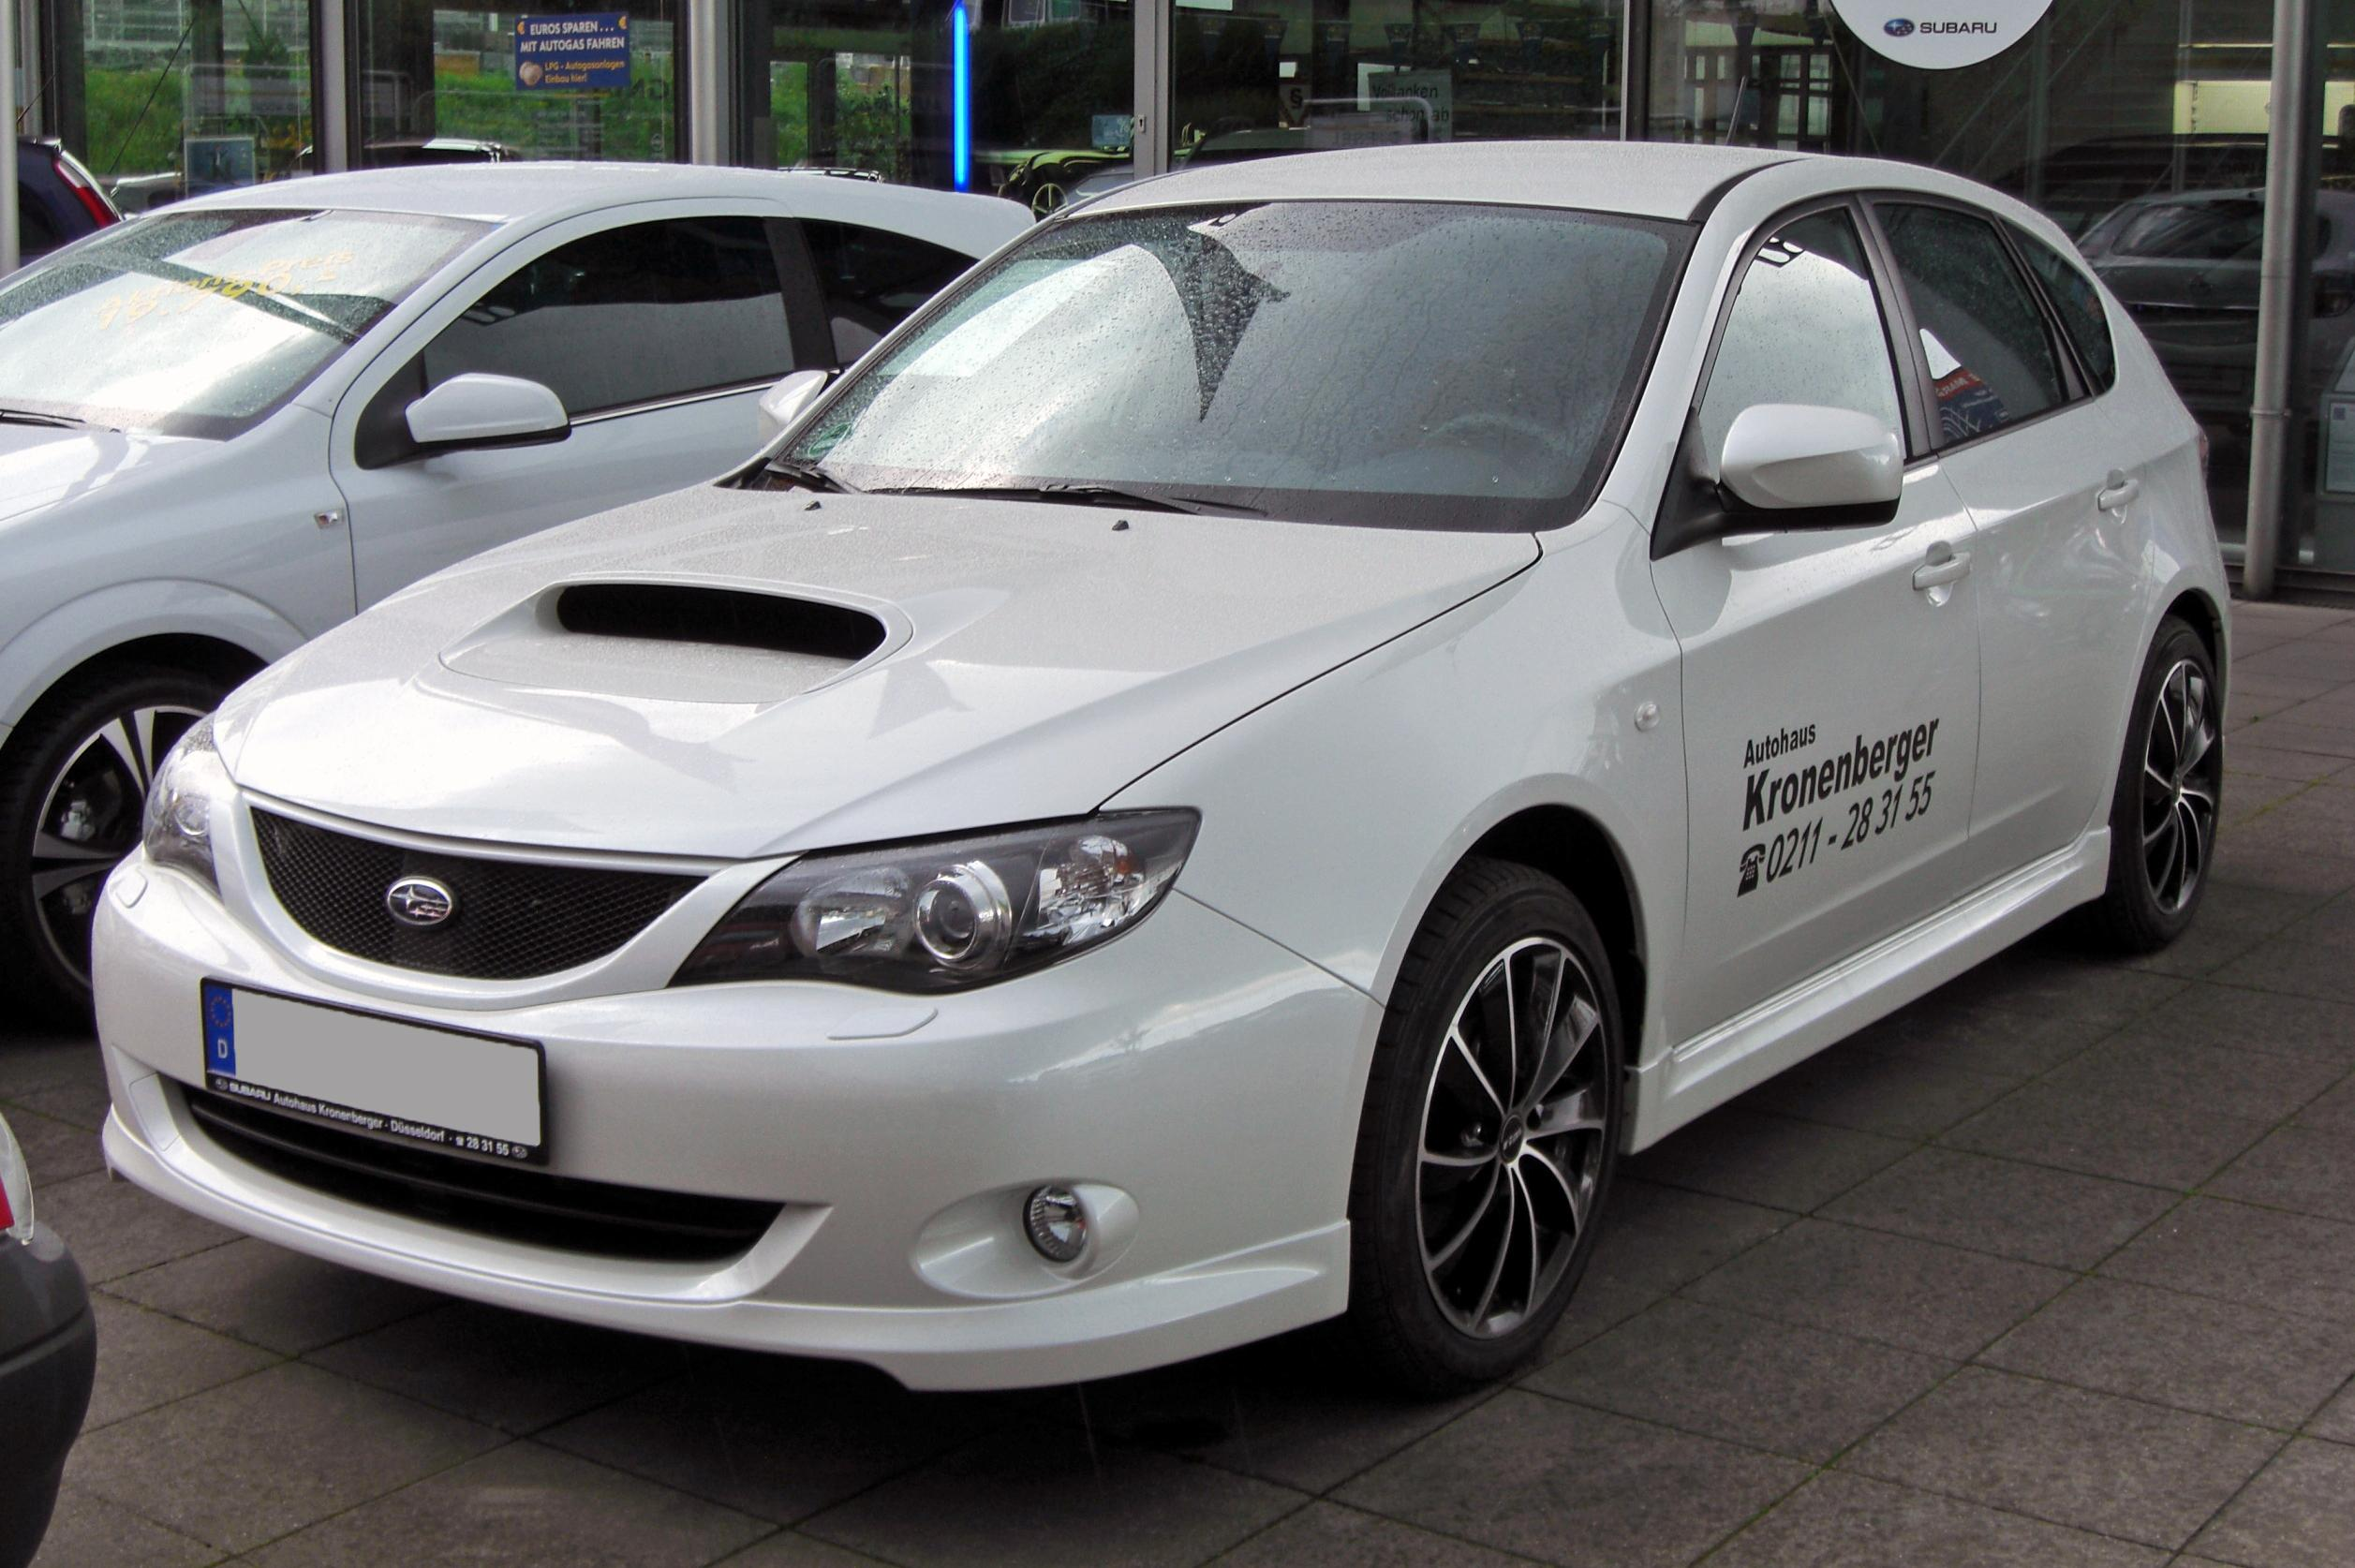 Subaru Impreza 2.0D technical details, history, photos on Better